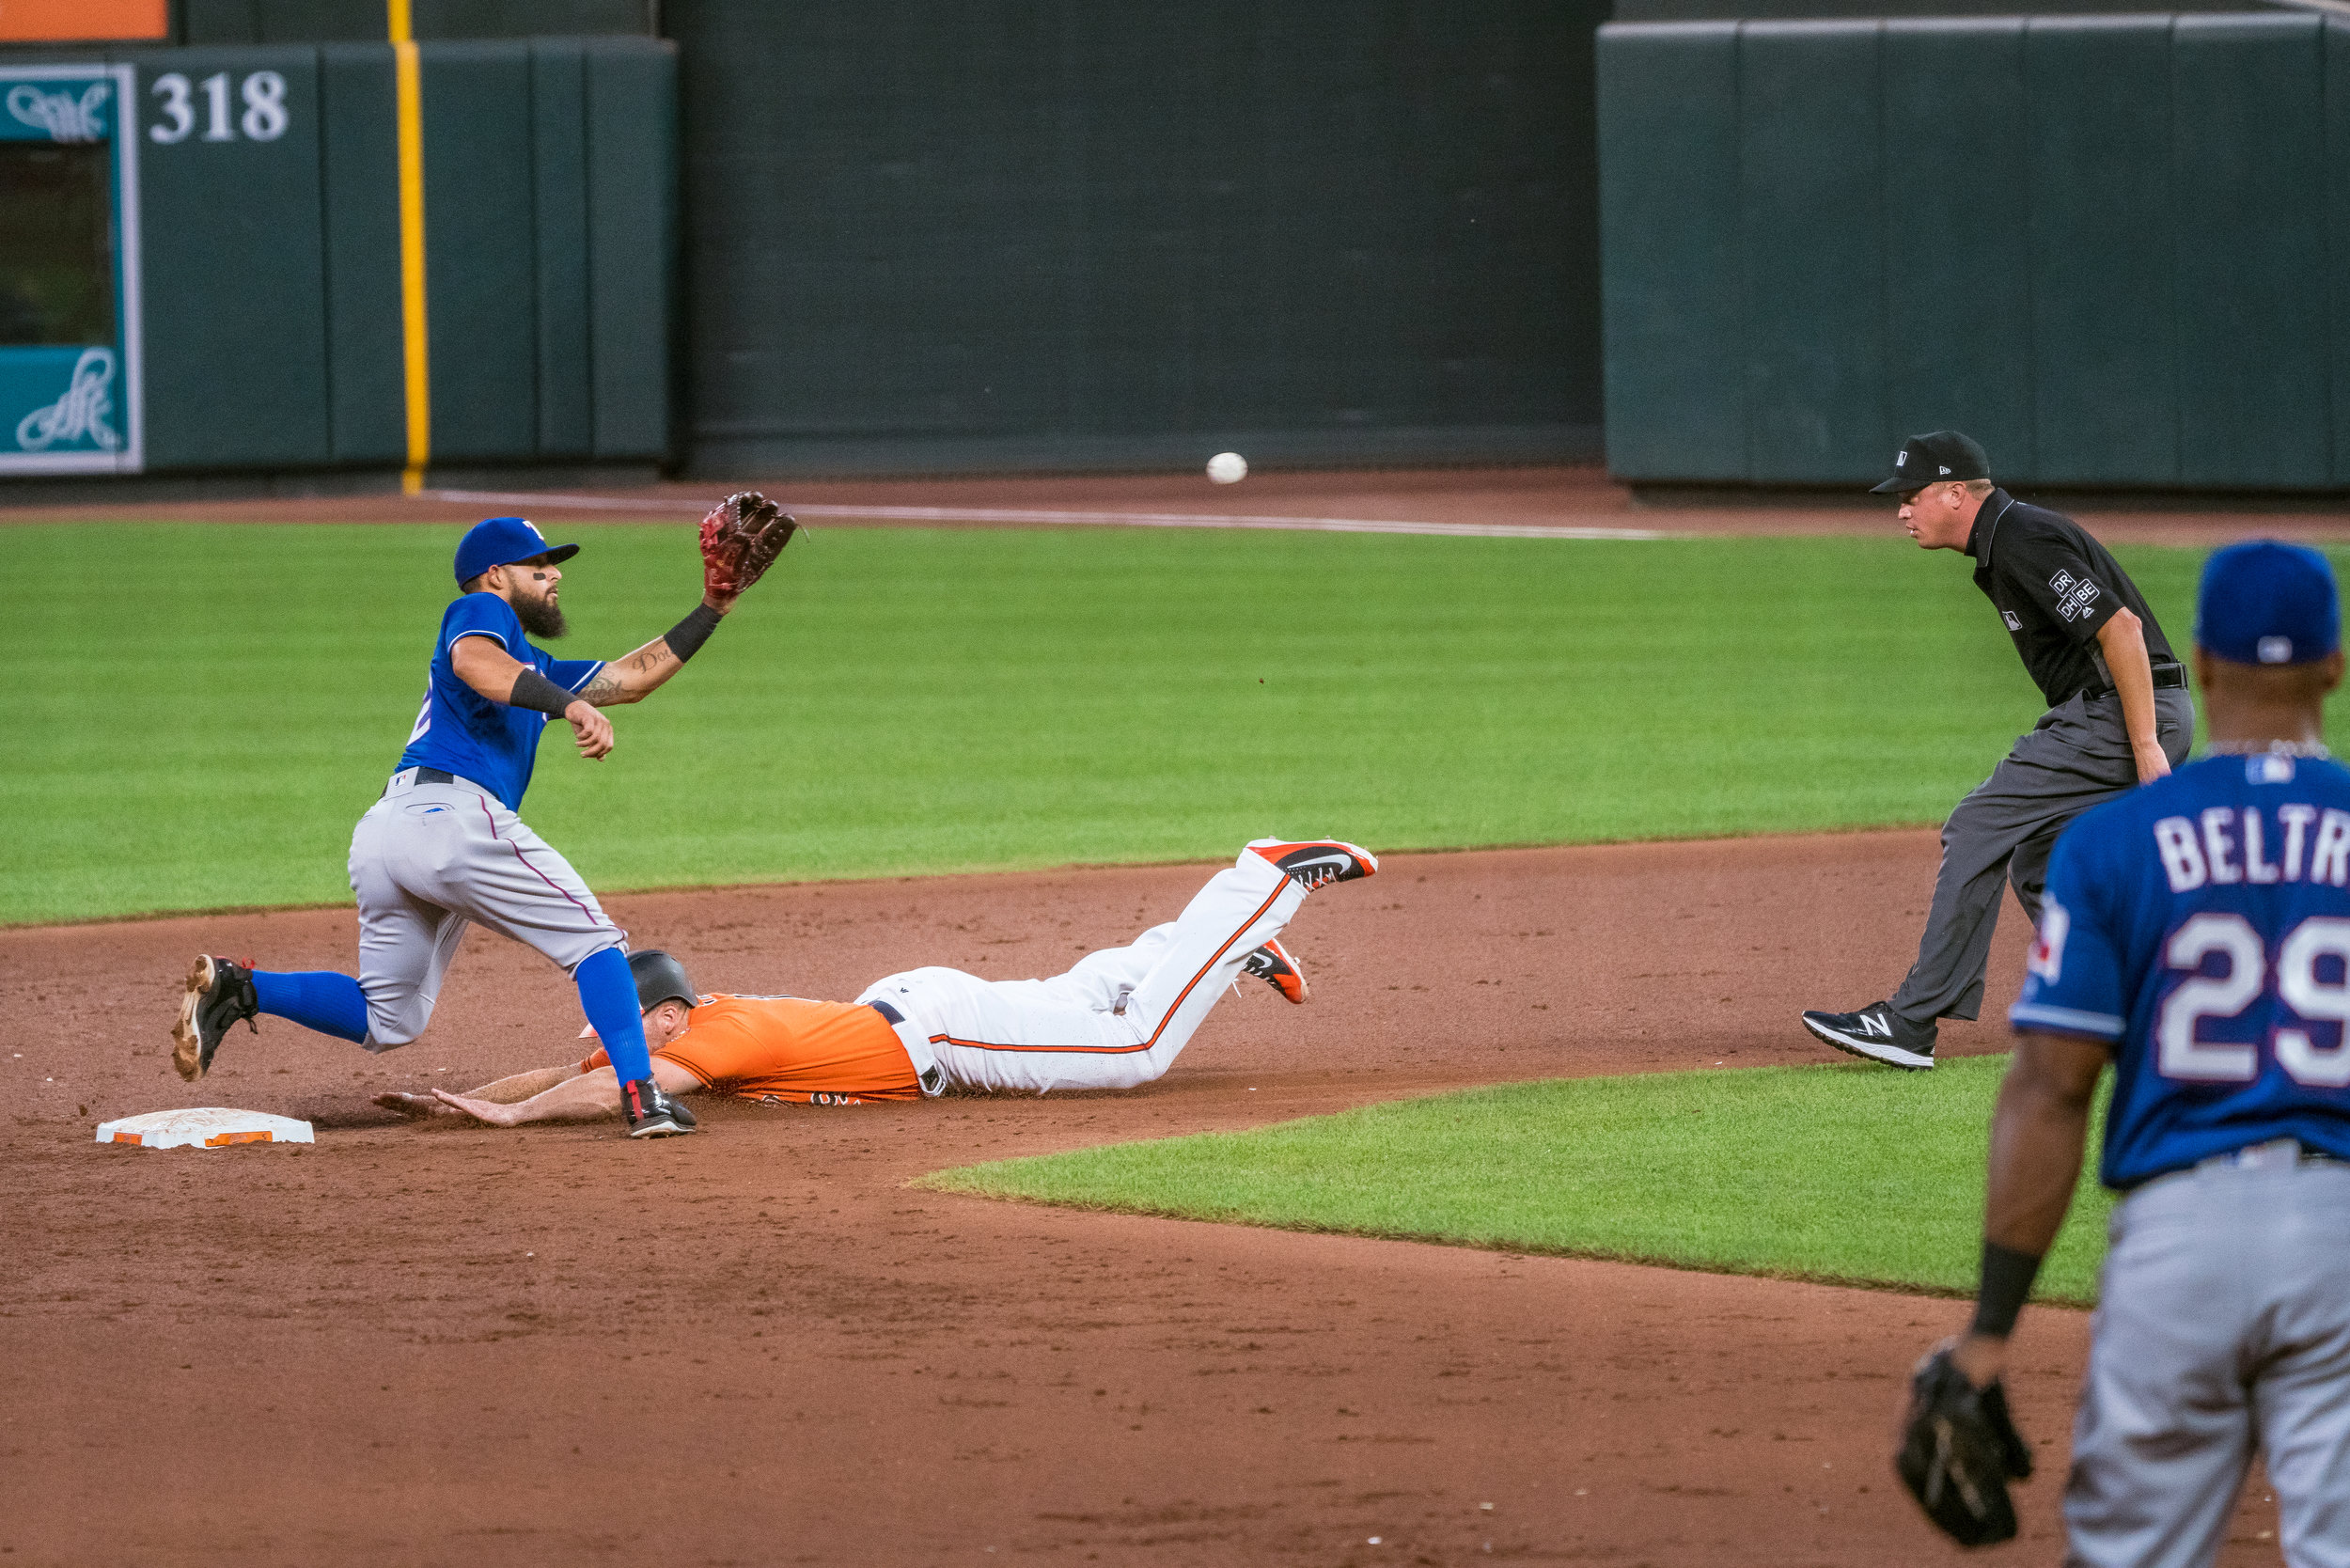 Throwdown at second, he was safe obviously but looks cool